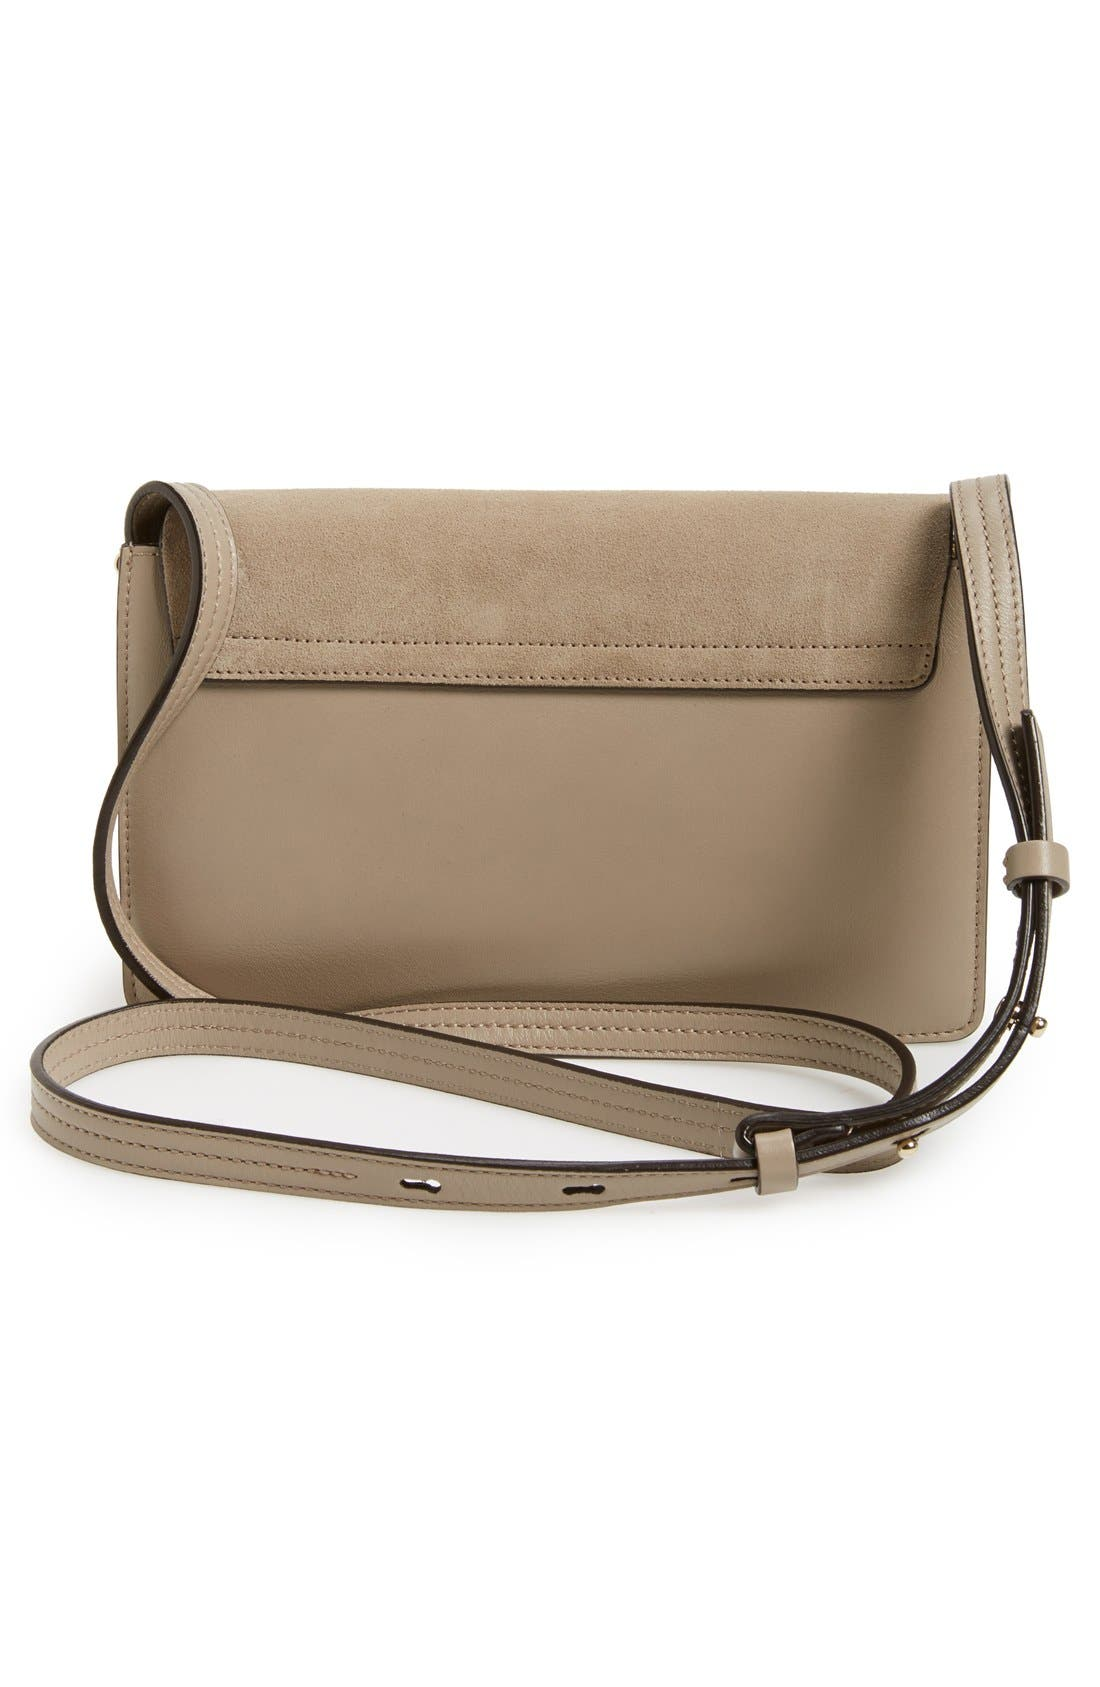 Alternate Image 3  - Chloé Small Faye Leather Shoulder Bag